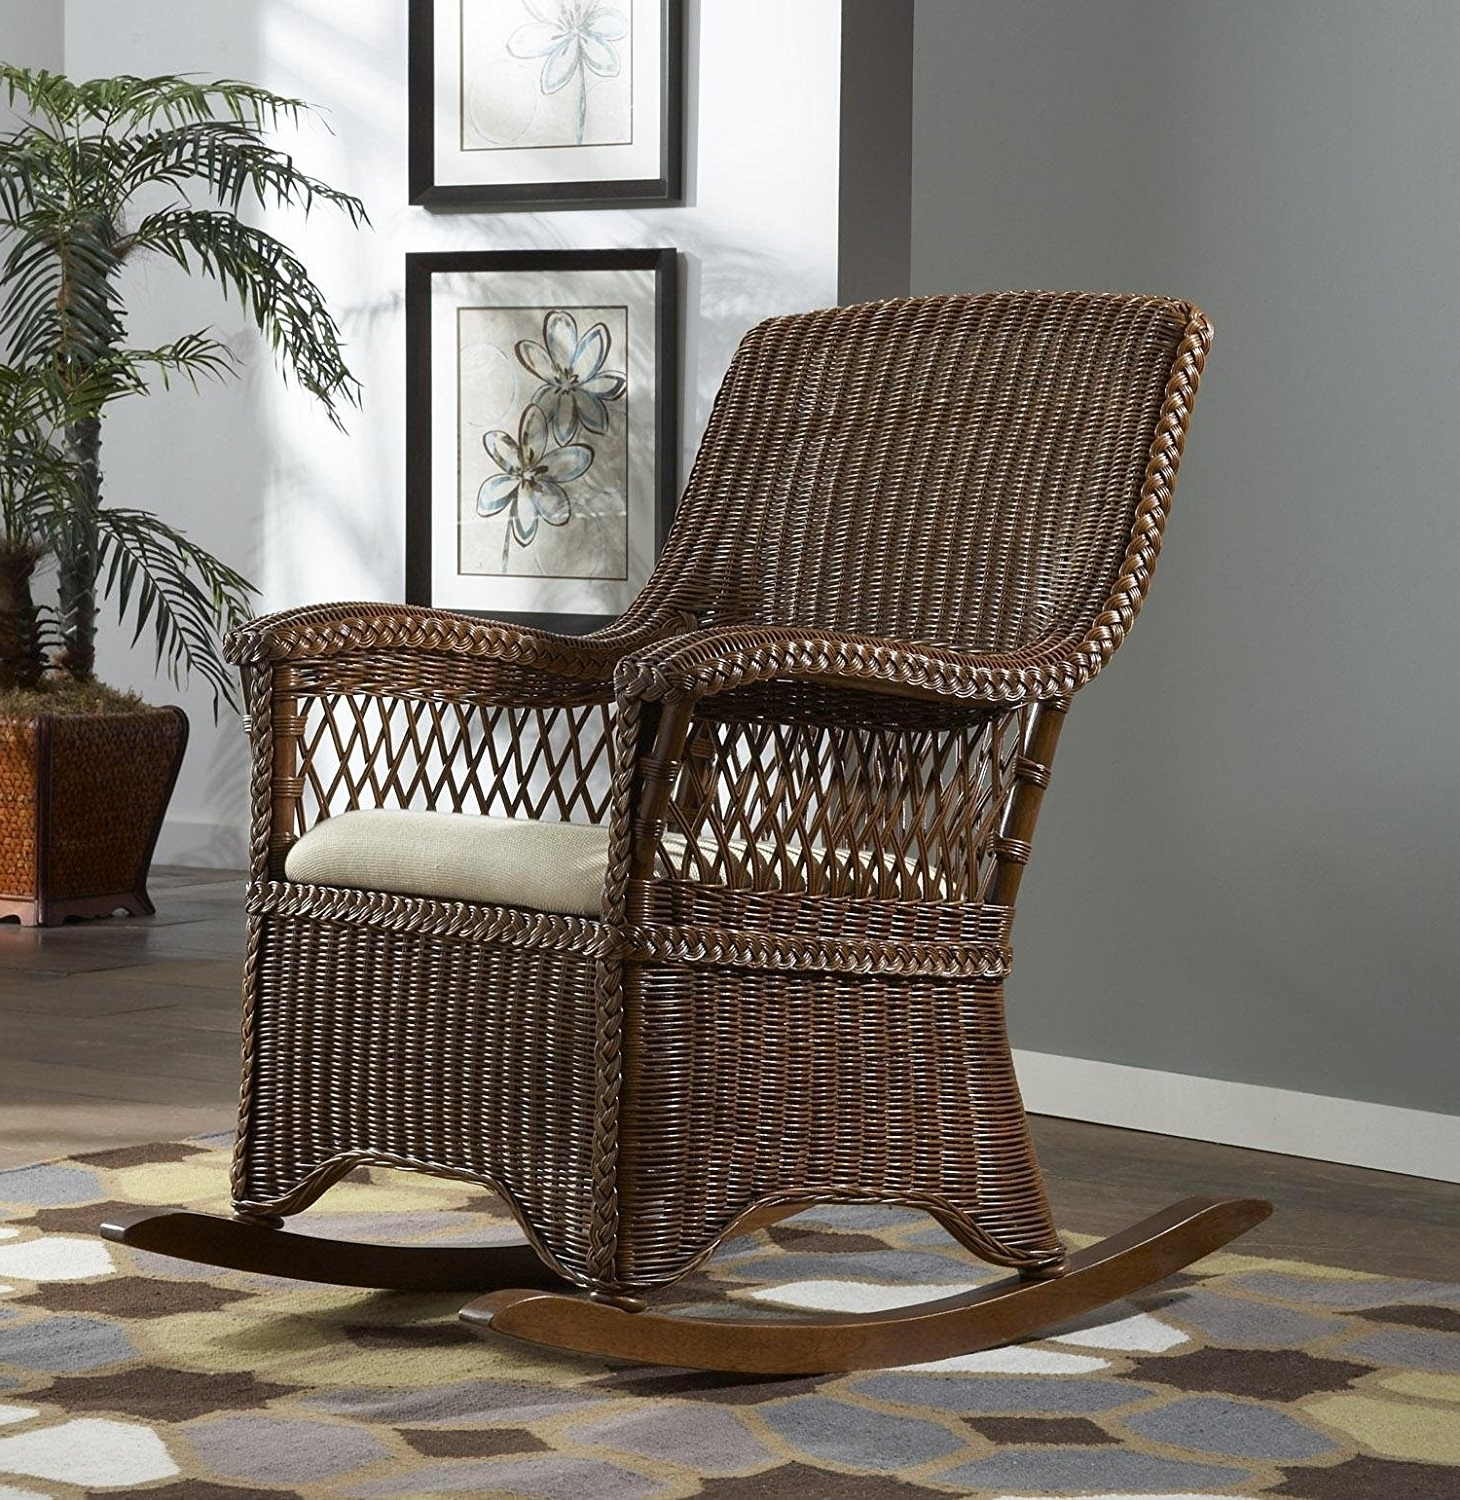 Best And Newest Wicker Indoor Rocking Chair With Cushion Baby Chairs For Nursery Inside Indoor Wicker Rocking Chairs (View 4 of 20)